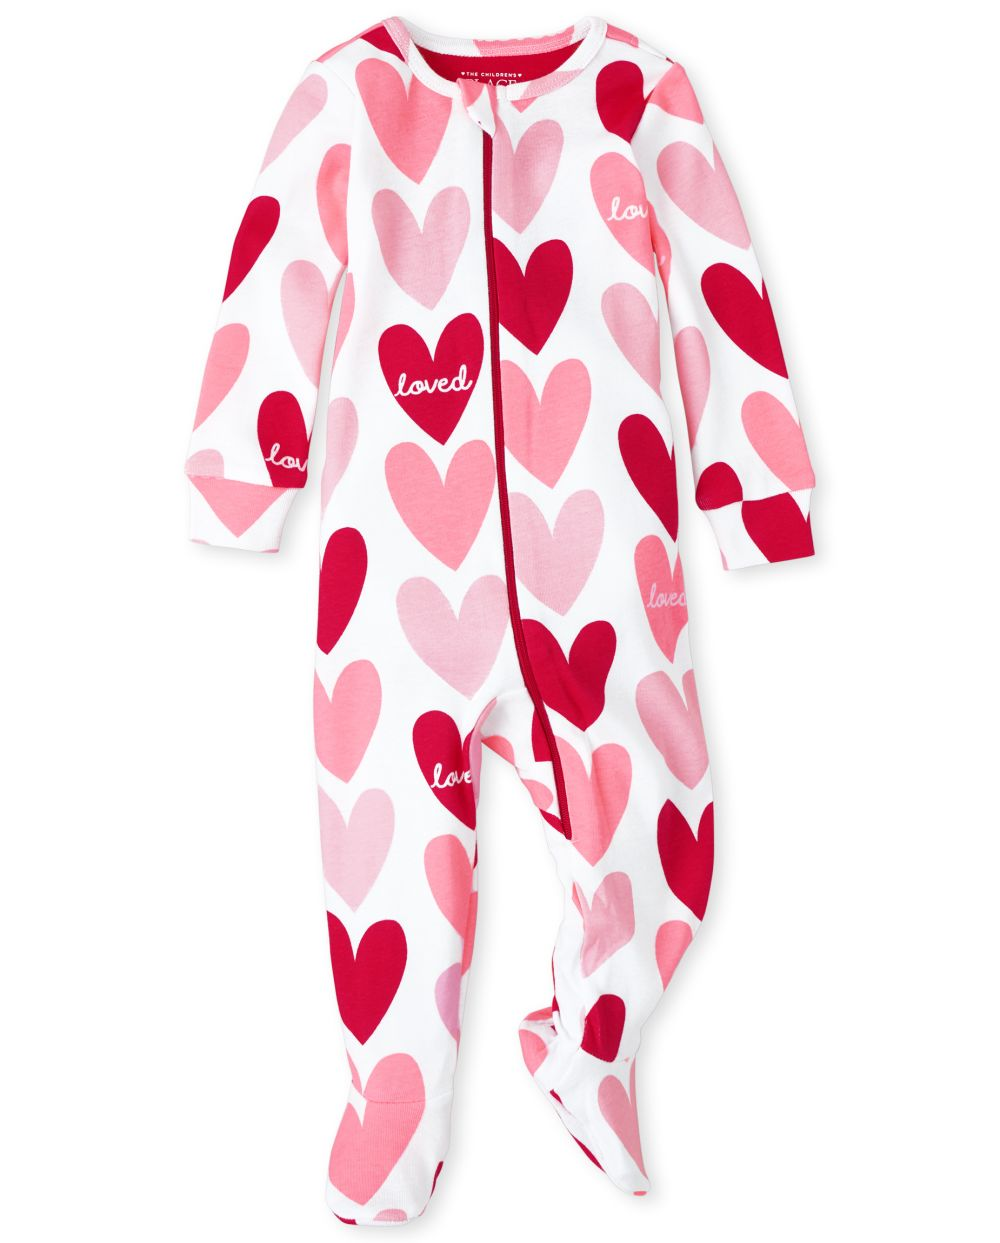 Baby And Toddler Girls Hearts Snug Fit Cotton One Piece Pajamas